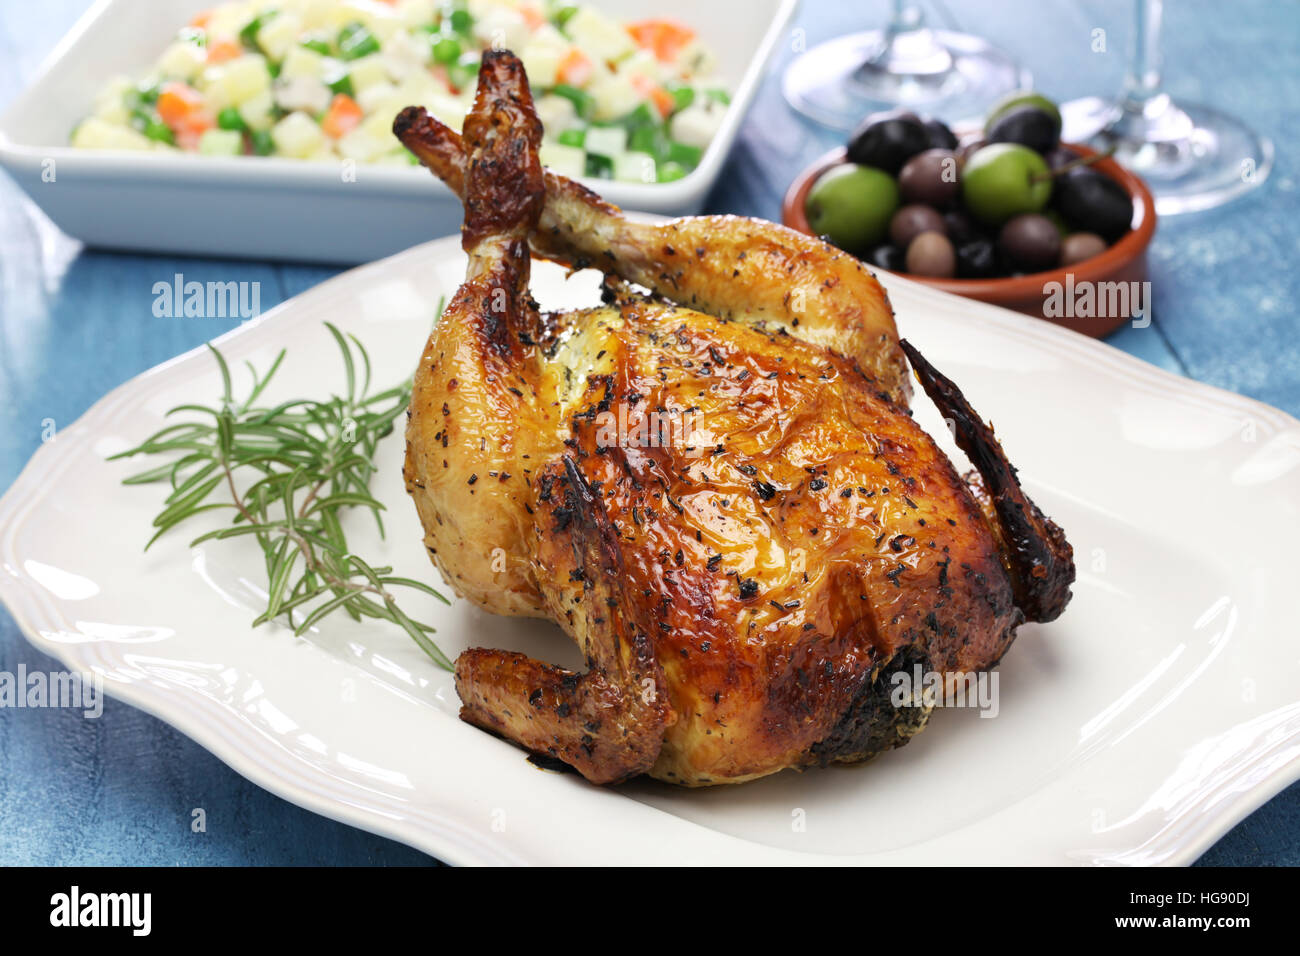 roast chicken, whole roasted chicken - Stock Image